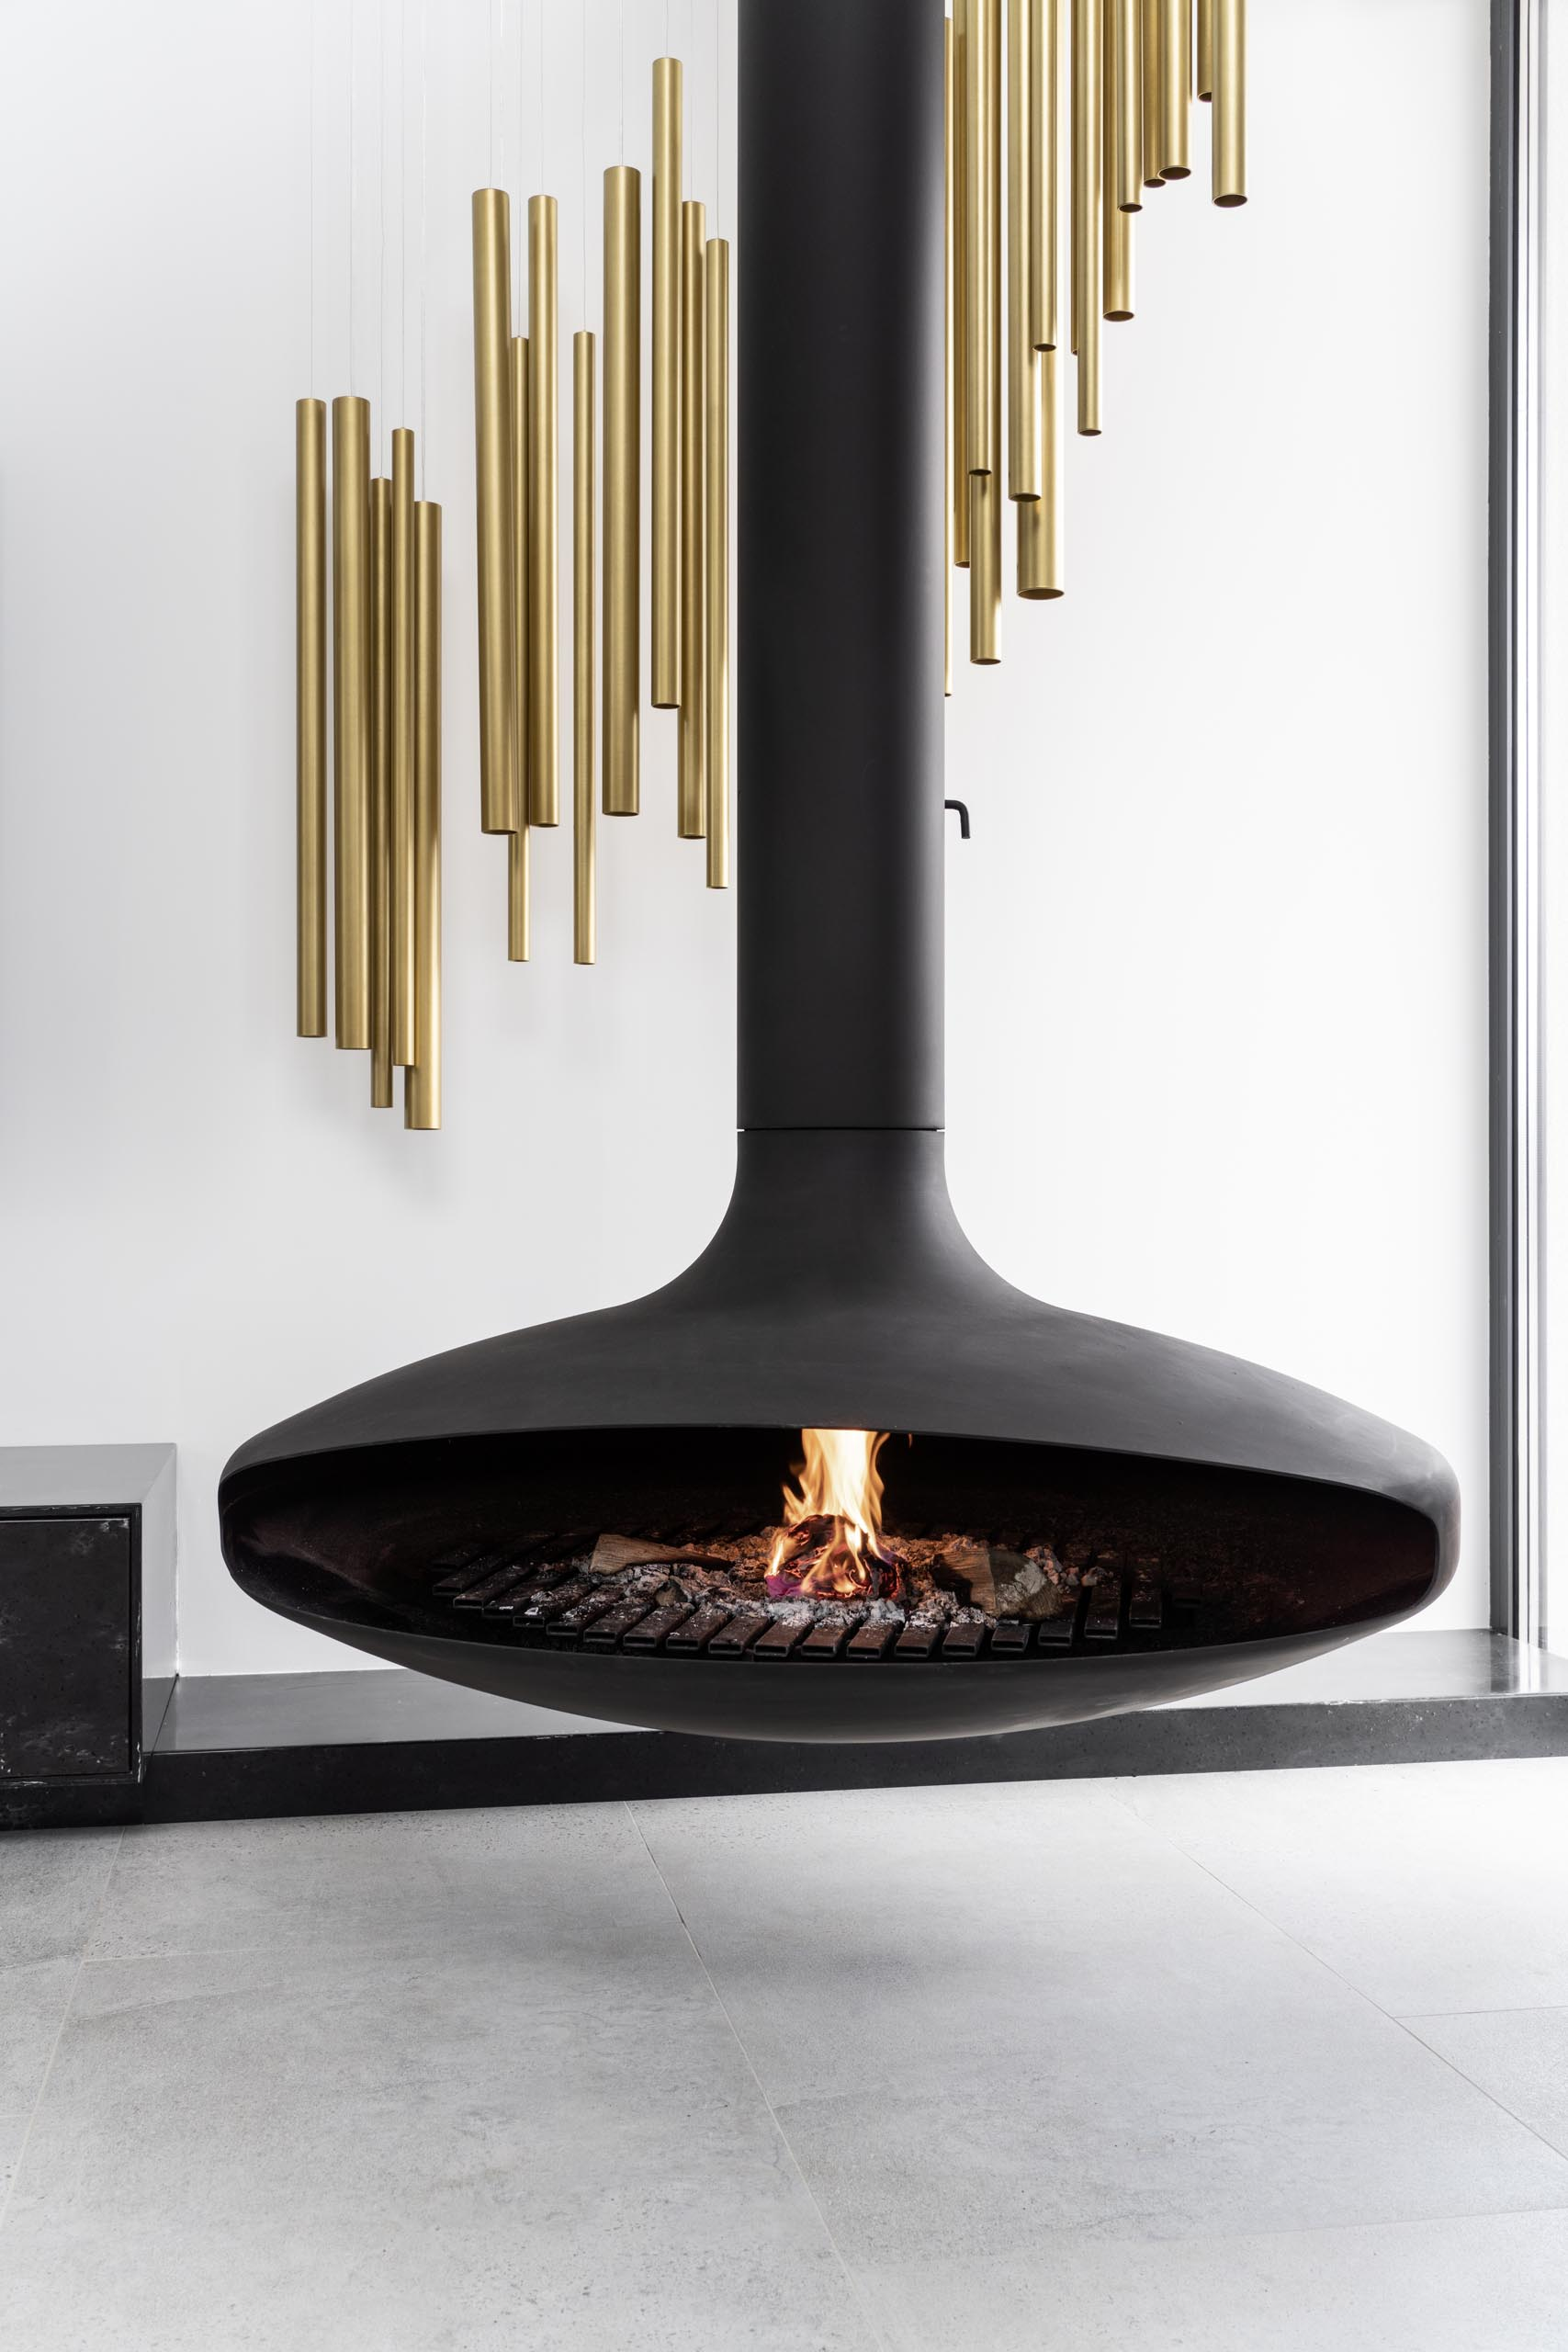 A suspended black fireplace.